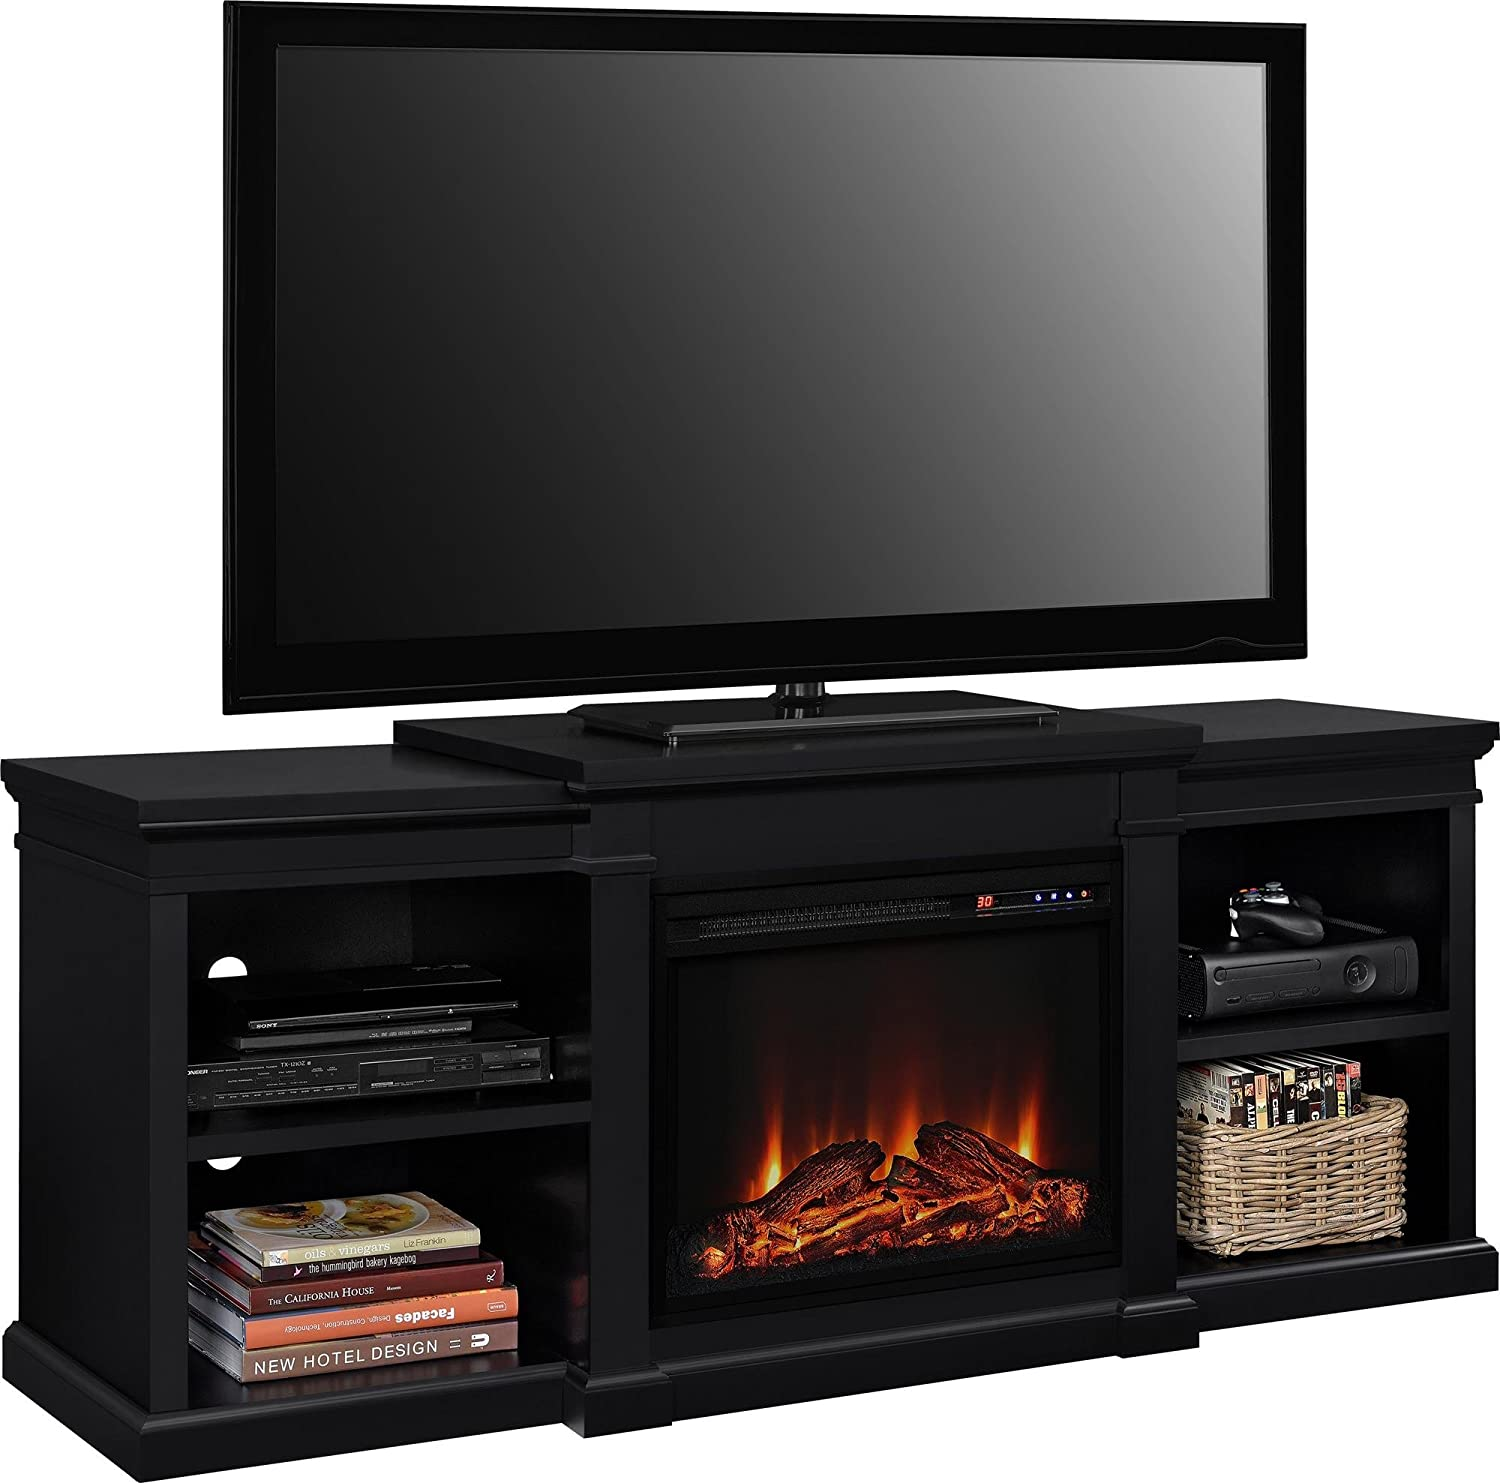 Black Ameriwood Home Manchester Electric Fireplace TV Stand for TVs up to 70